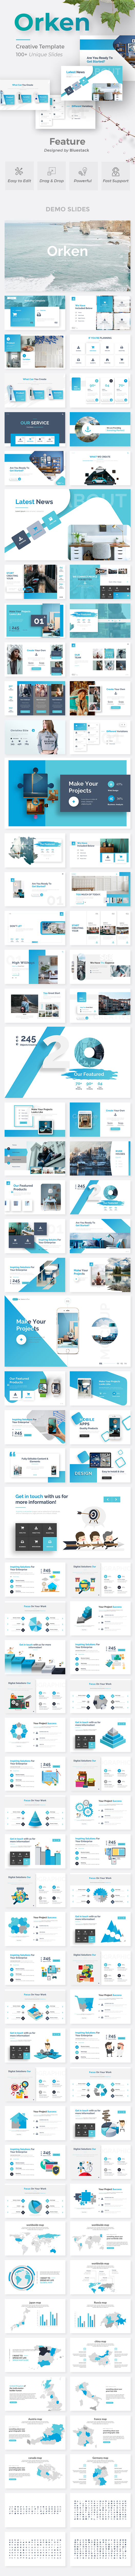 Orken Premium Design Keynote Template - Creative Keynote Templates